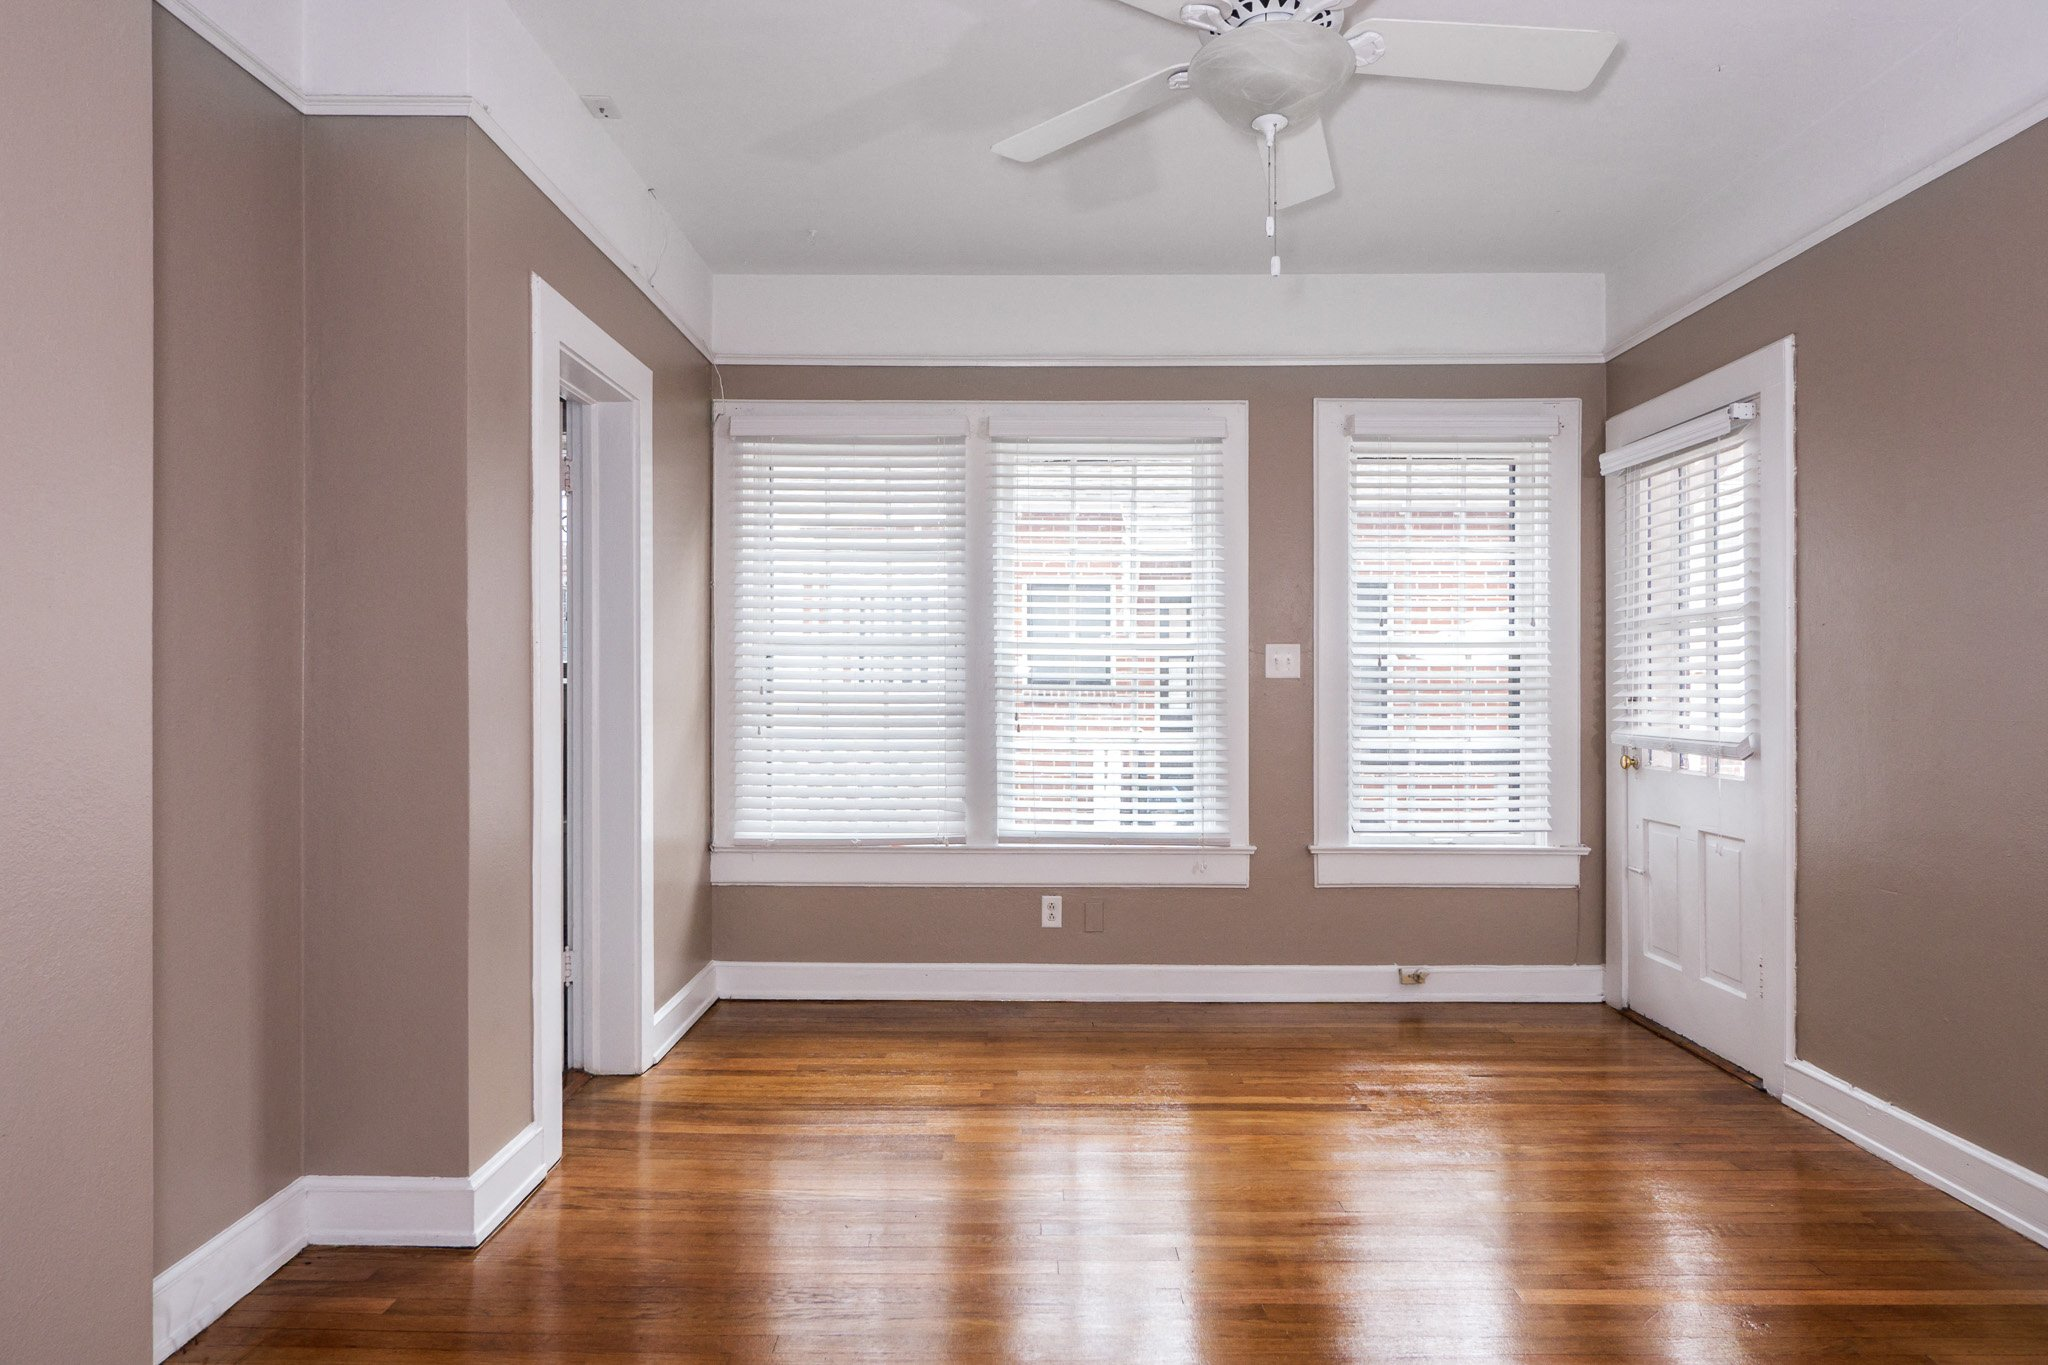 Bungalow Offers Original Hardwood Floors